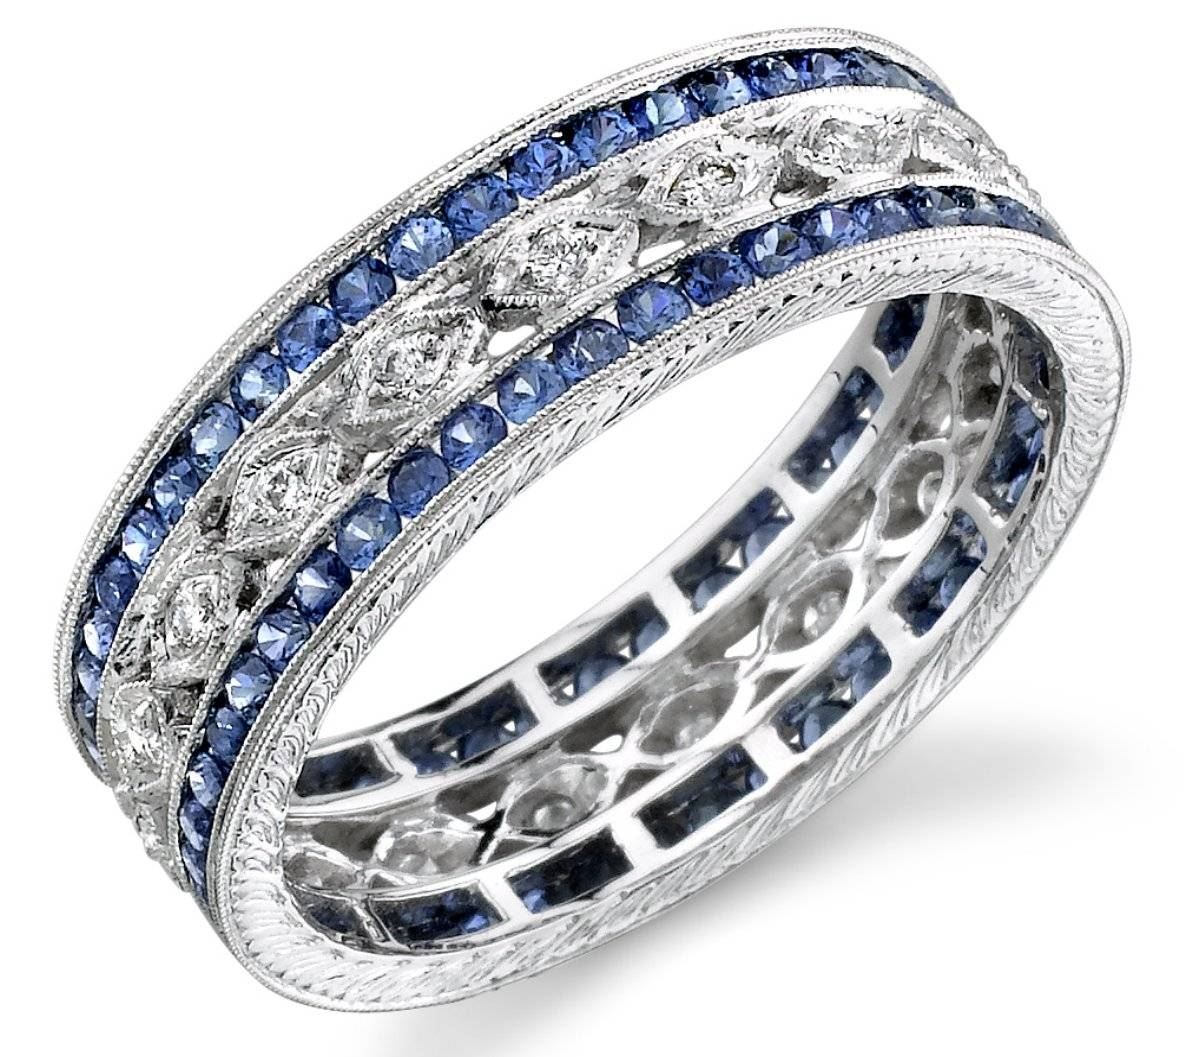 Engagement Rings : Awesome Diamond Engagement Rings With Sapphires With Sapphire And Diamond Wedding Rings (View 2 of 15)